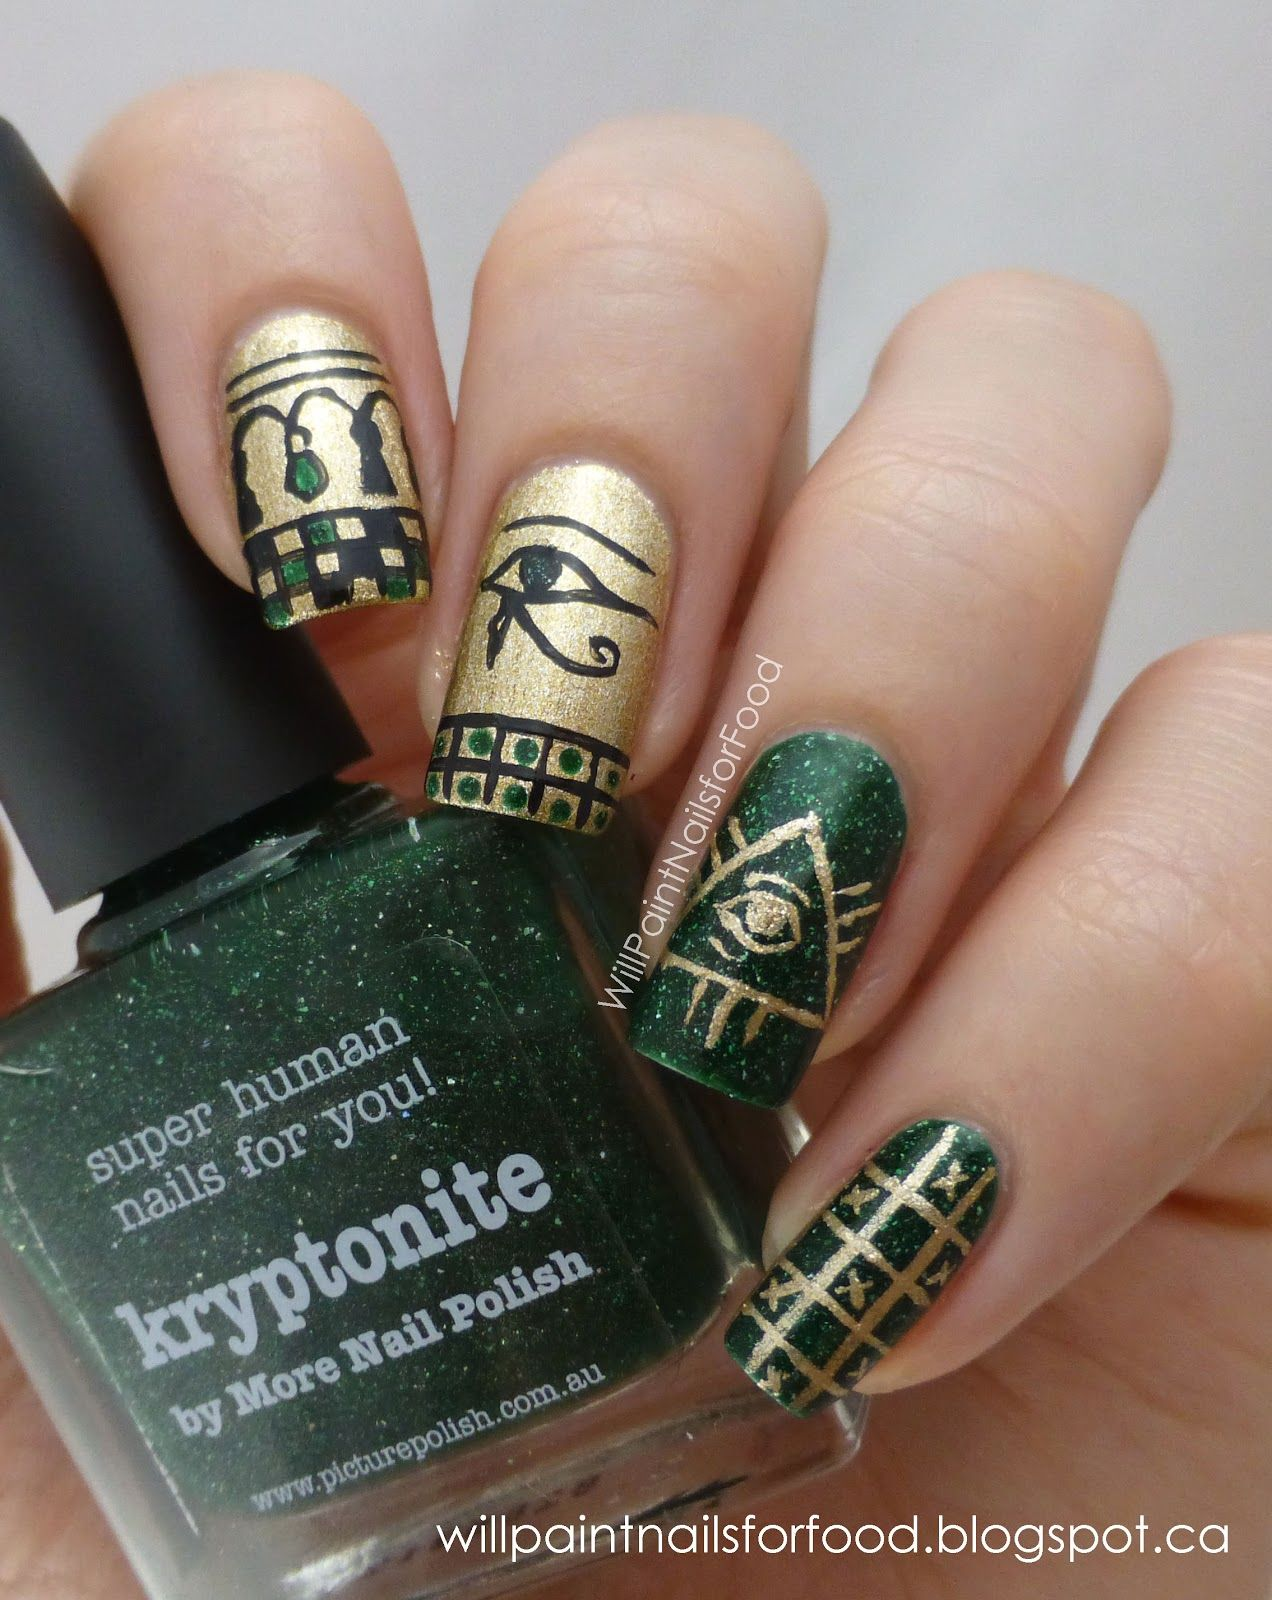 Will Paint Nails for Food #nail #nails #nailart | Nail | Pinterest ...